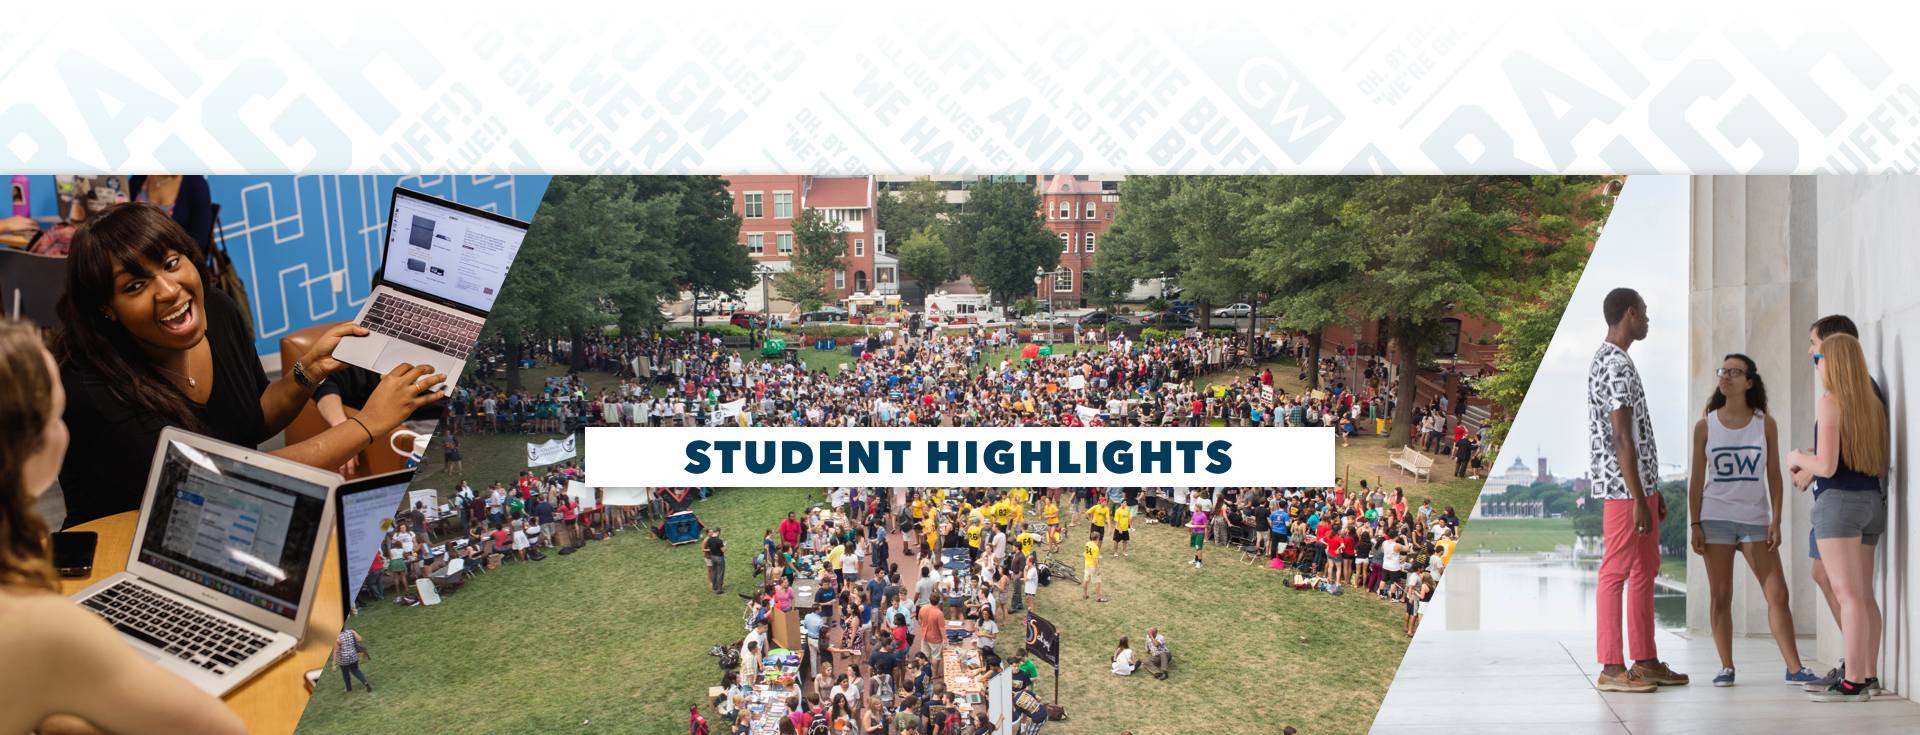 Multiple images of students on campus engaging